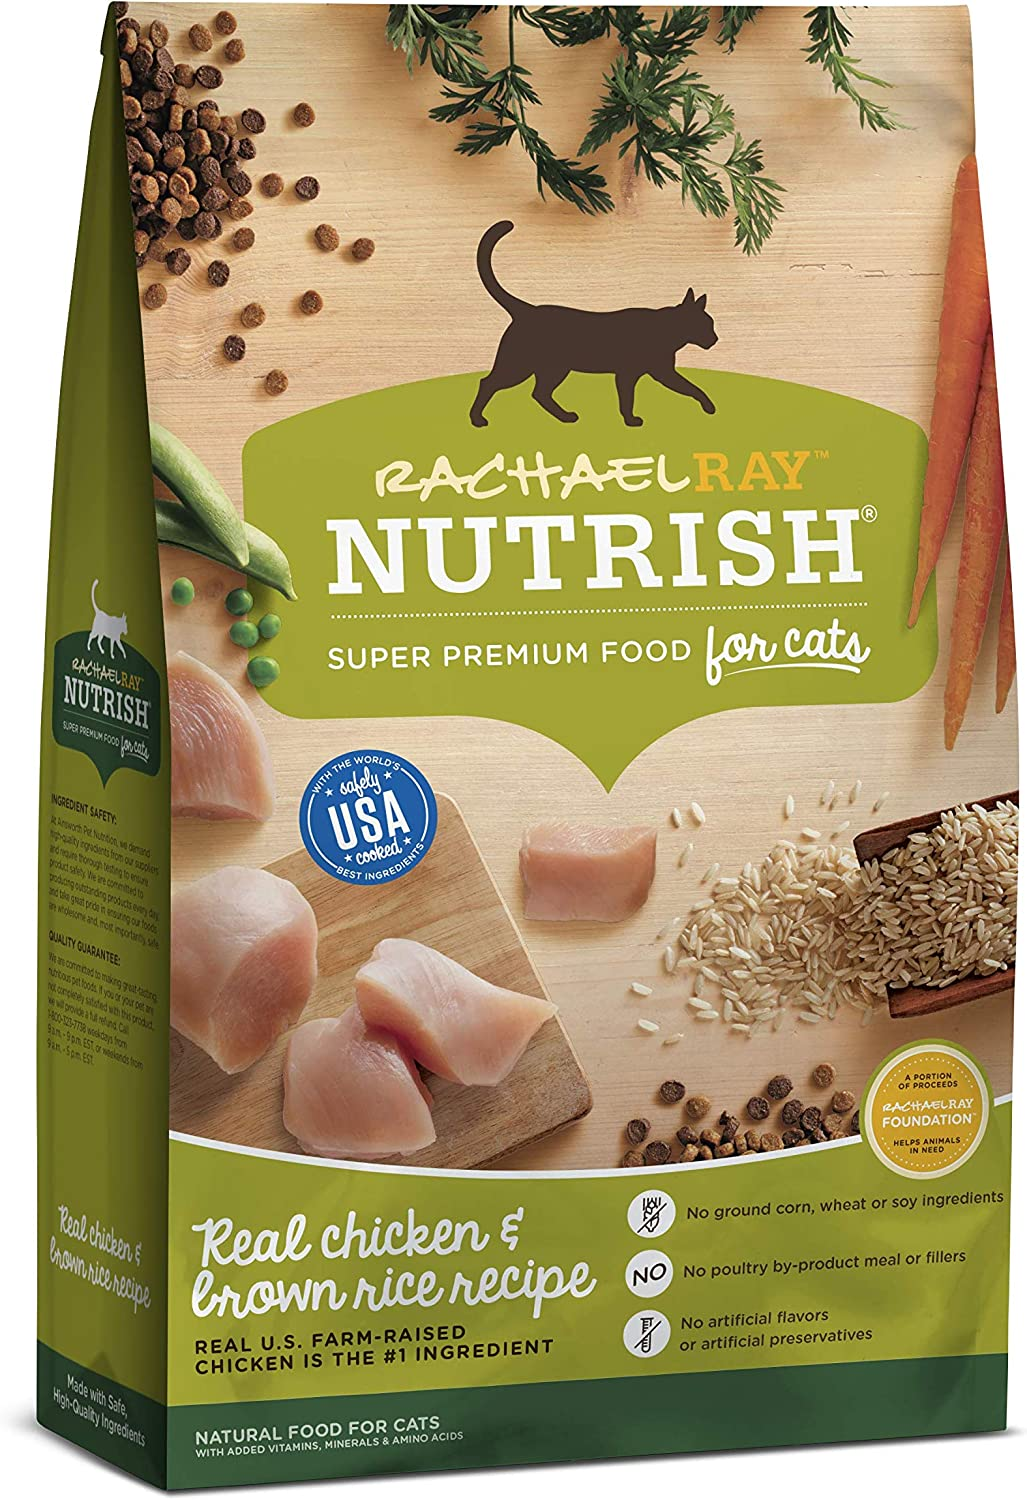 8. Rachael Ray Nutrish Natural Dry Cat Food